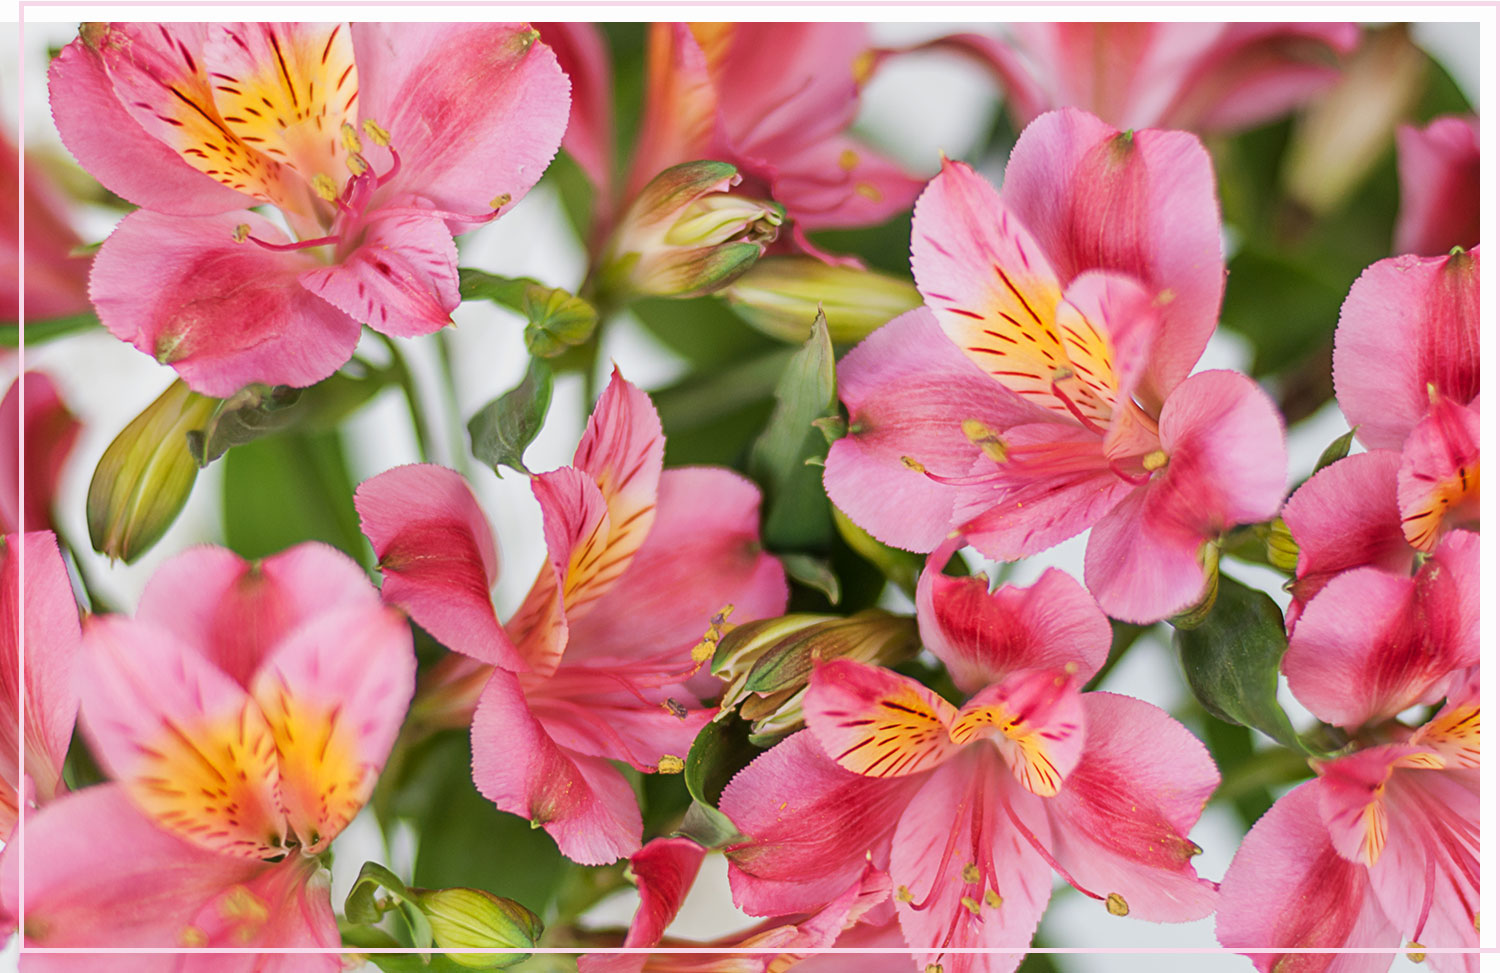 photo of bright pink flowers